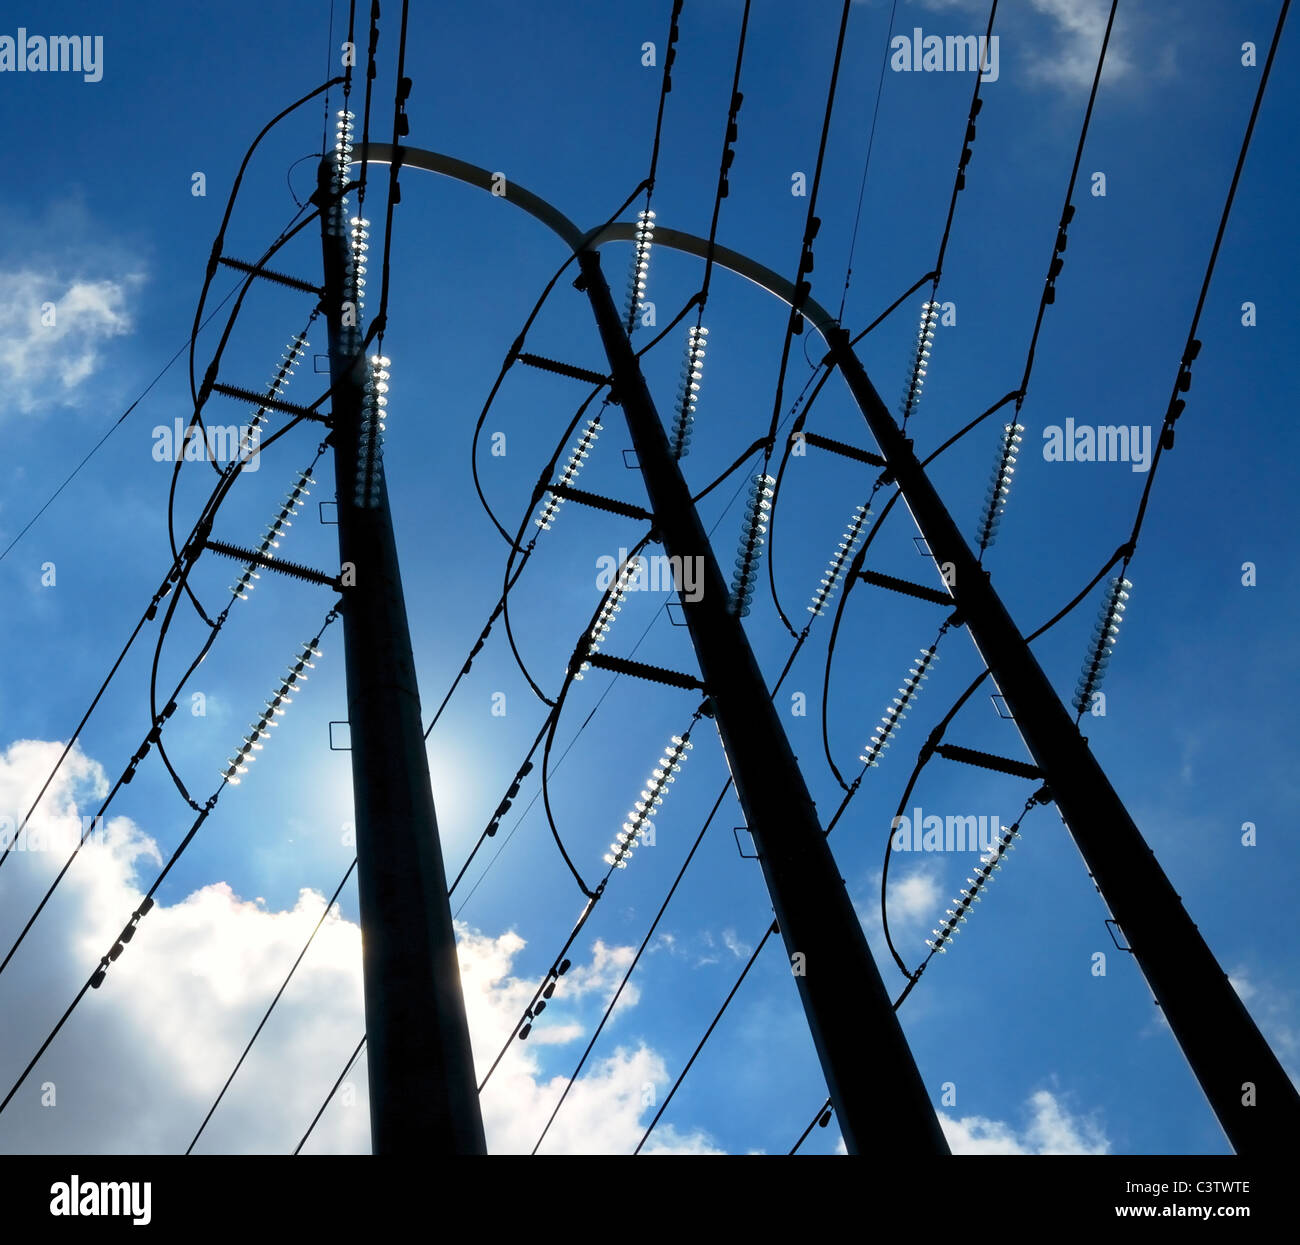 Power Electric High Voltage Electric Power Distribution Tower And Wires Stock